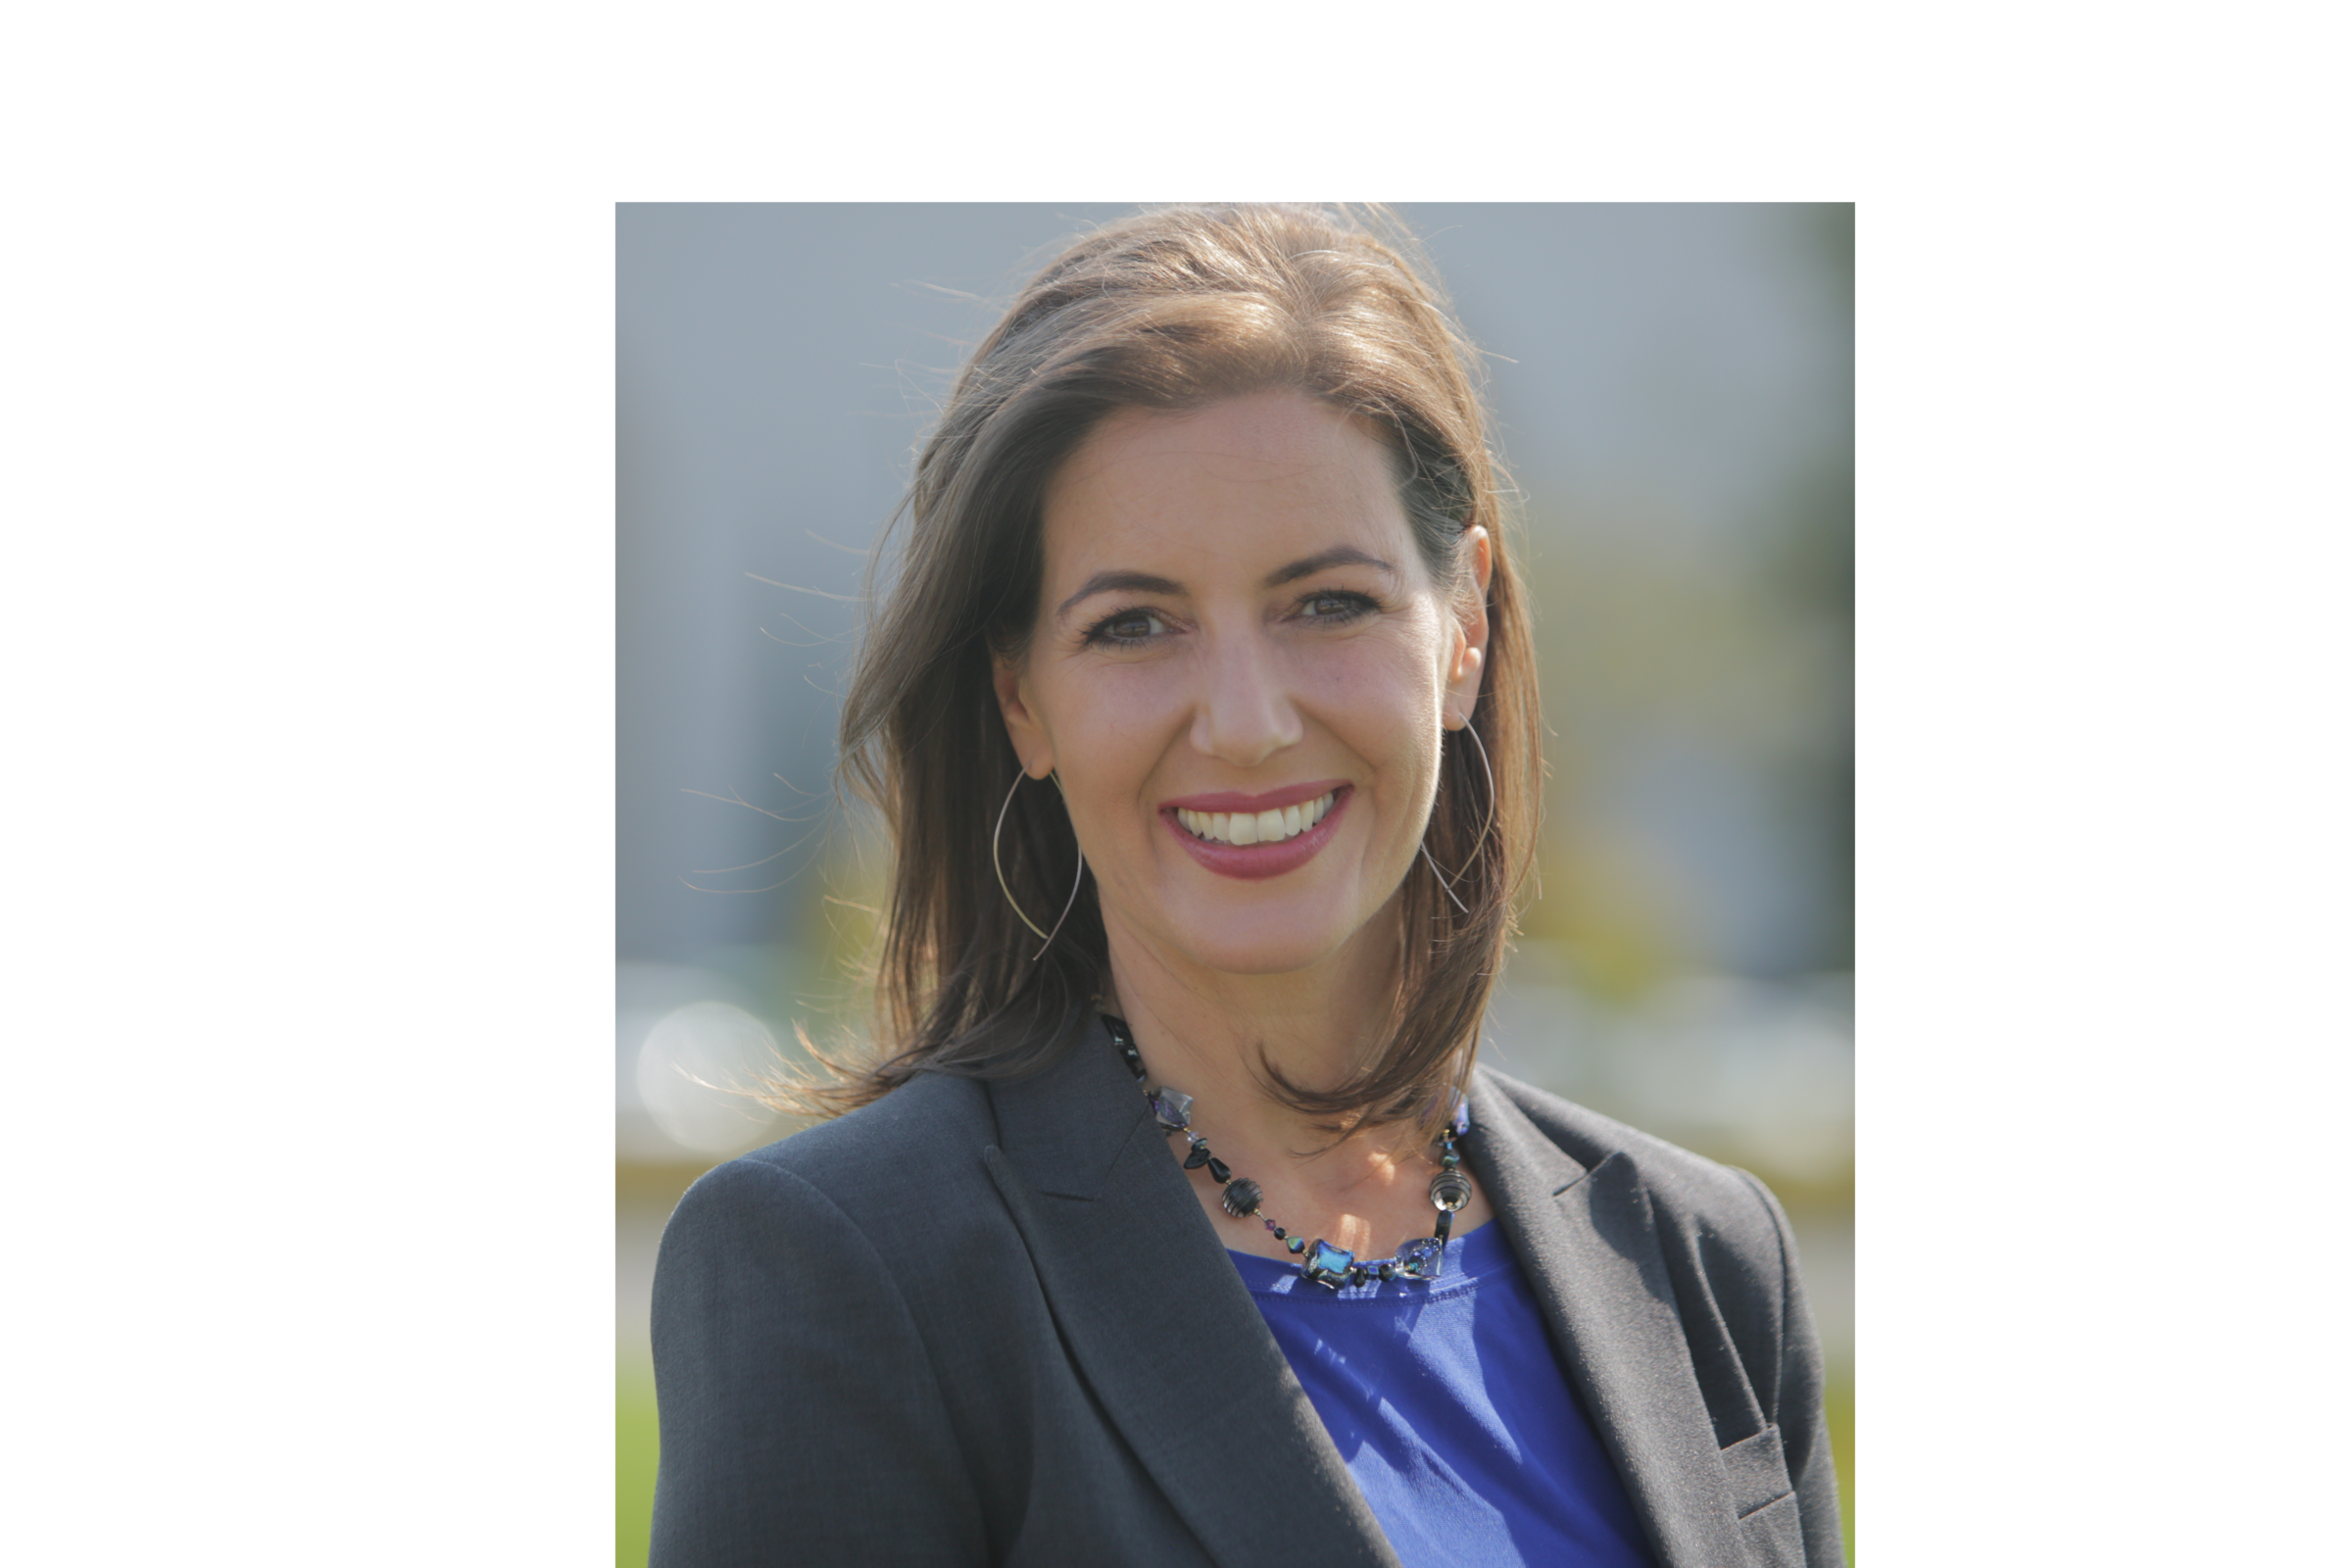 Libby Schaaf Oakland Mayor Libby Schaaf on President Trump Move Beyond Anger to